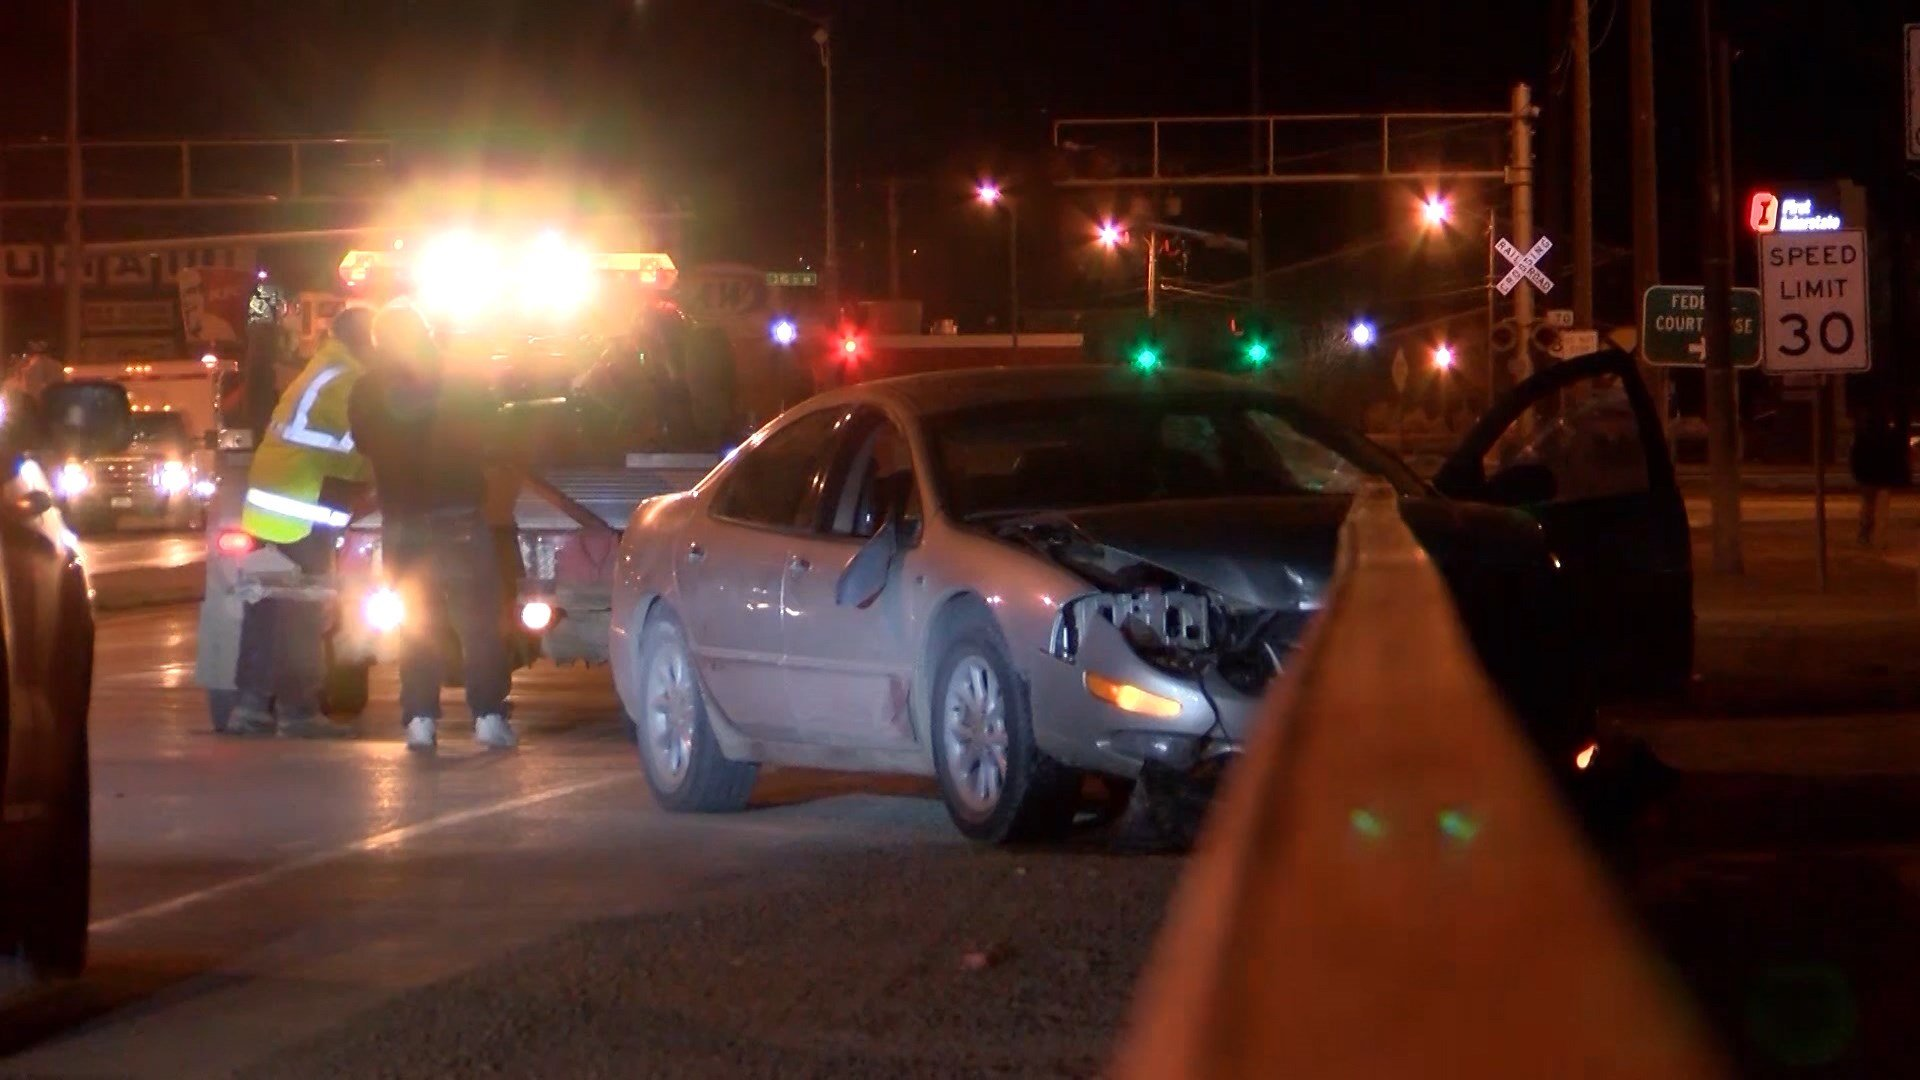 Daniels, Jr. eventually lost control of the car and crashed into the guardrail on the north side of the Central Ave. bridge, where the two attempted to flee on foot.